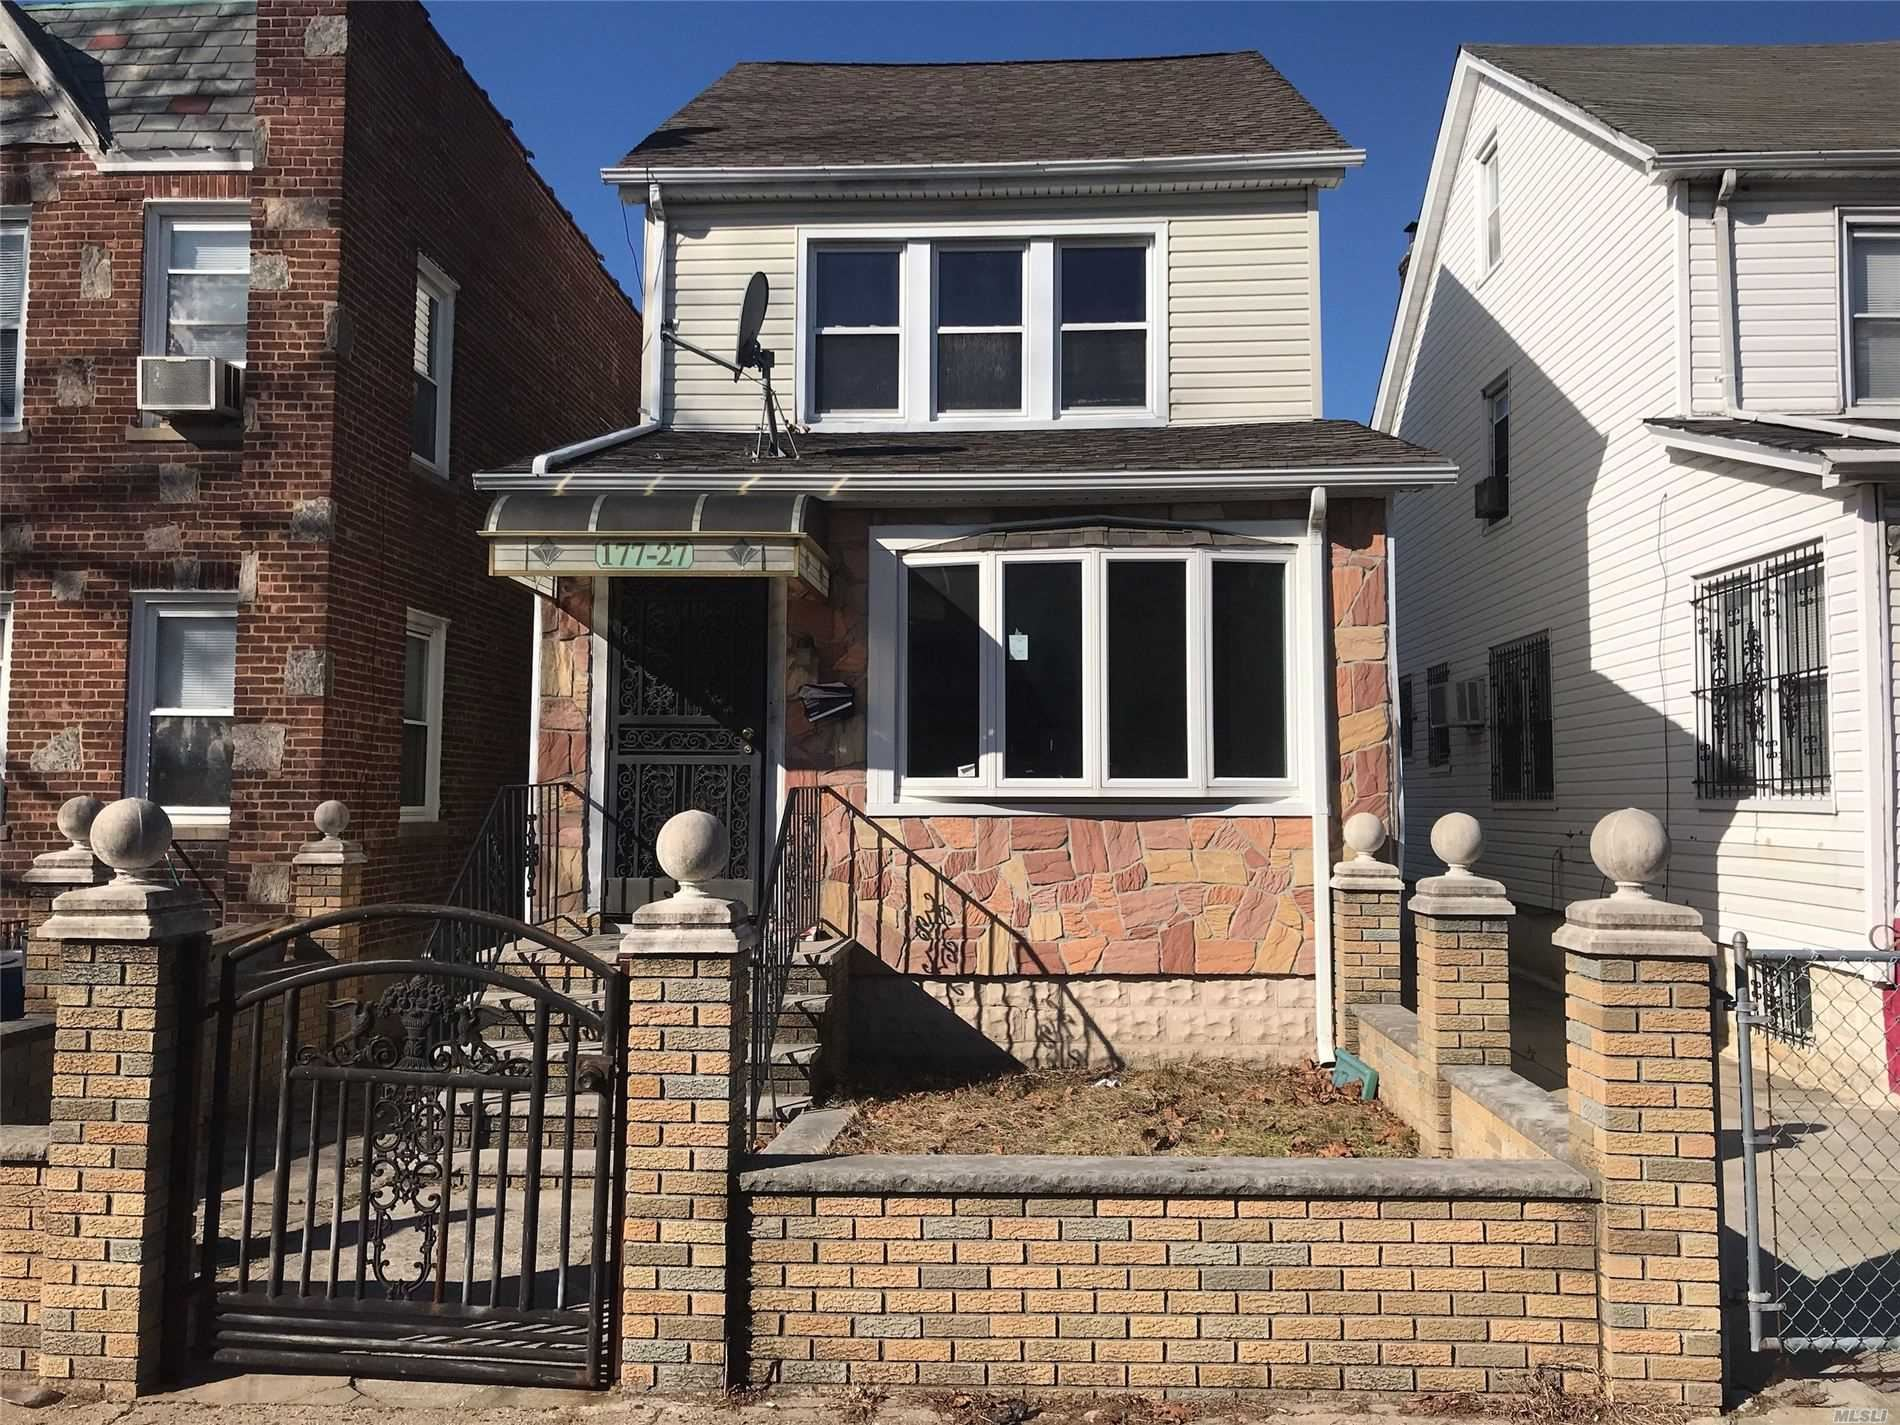 177-27 Troutville Road, Jamaica, NY 11434 - MLS#: 3193568